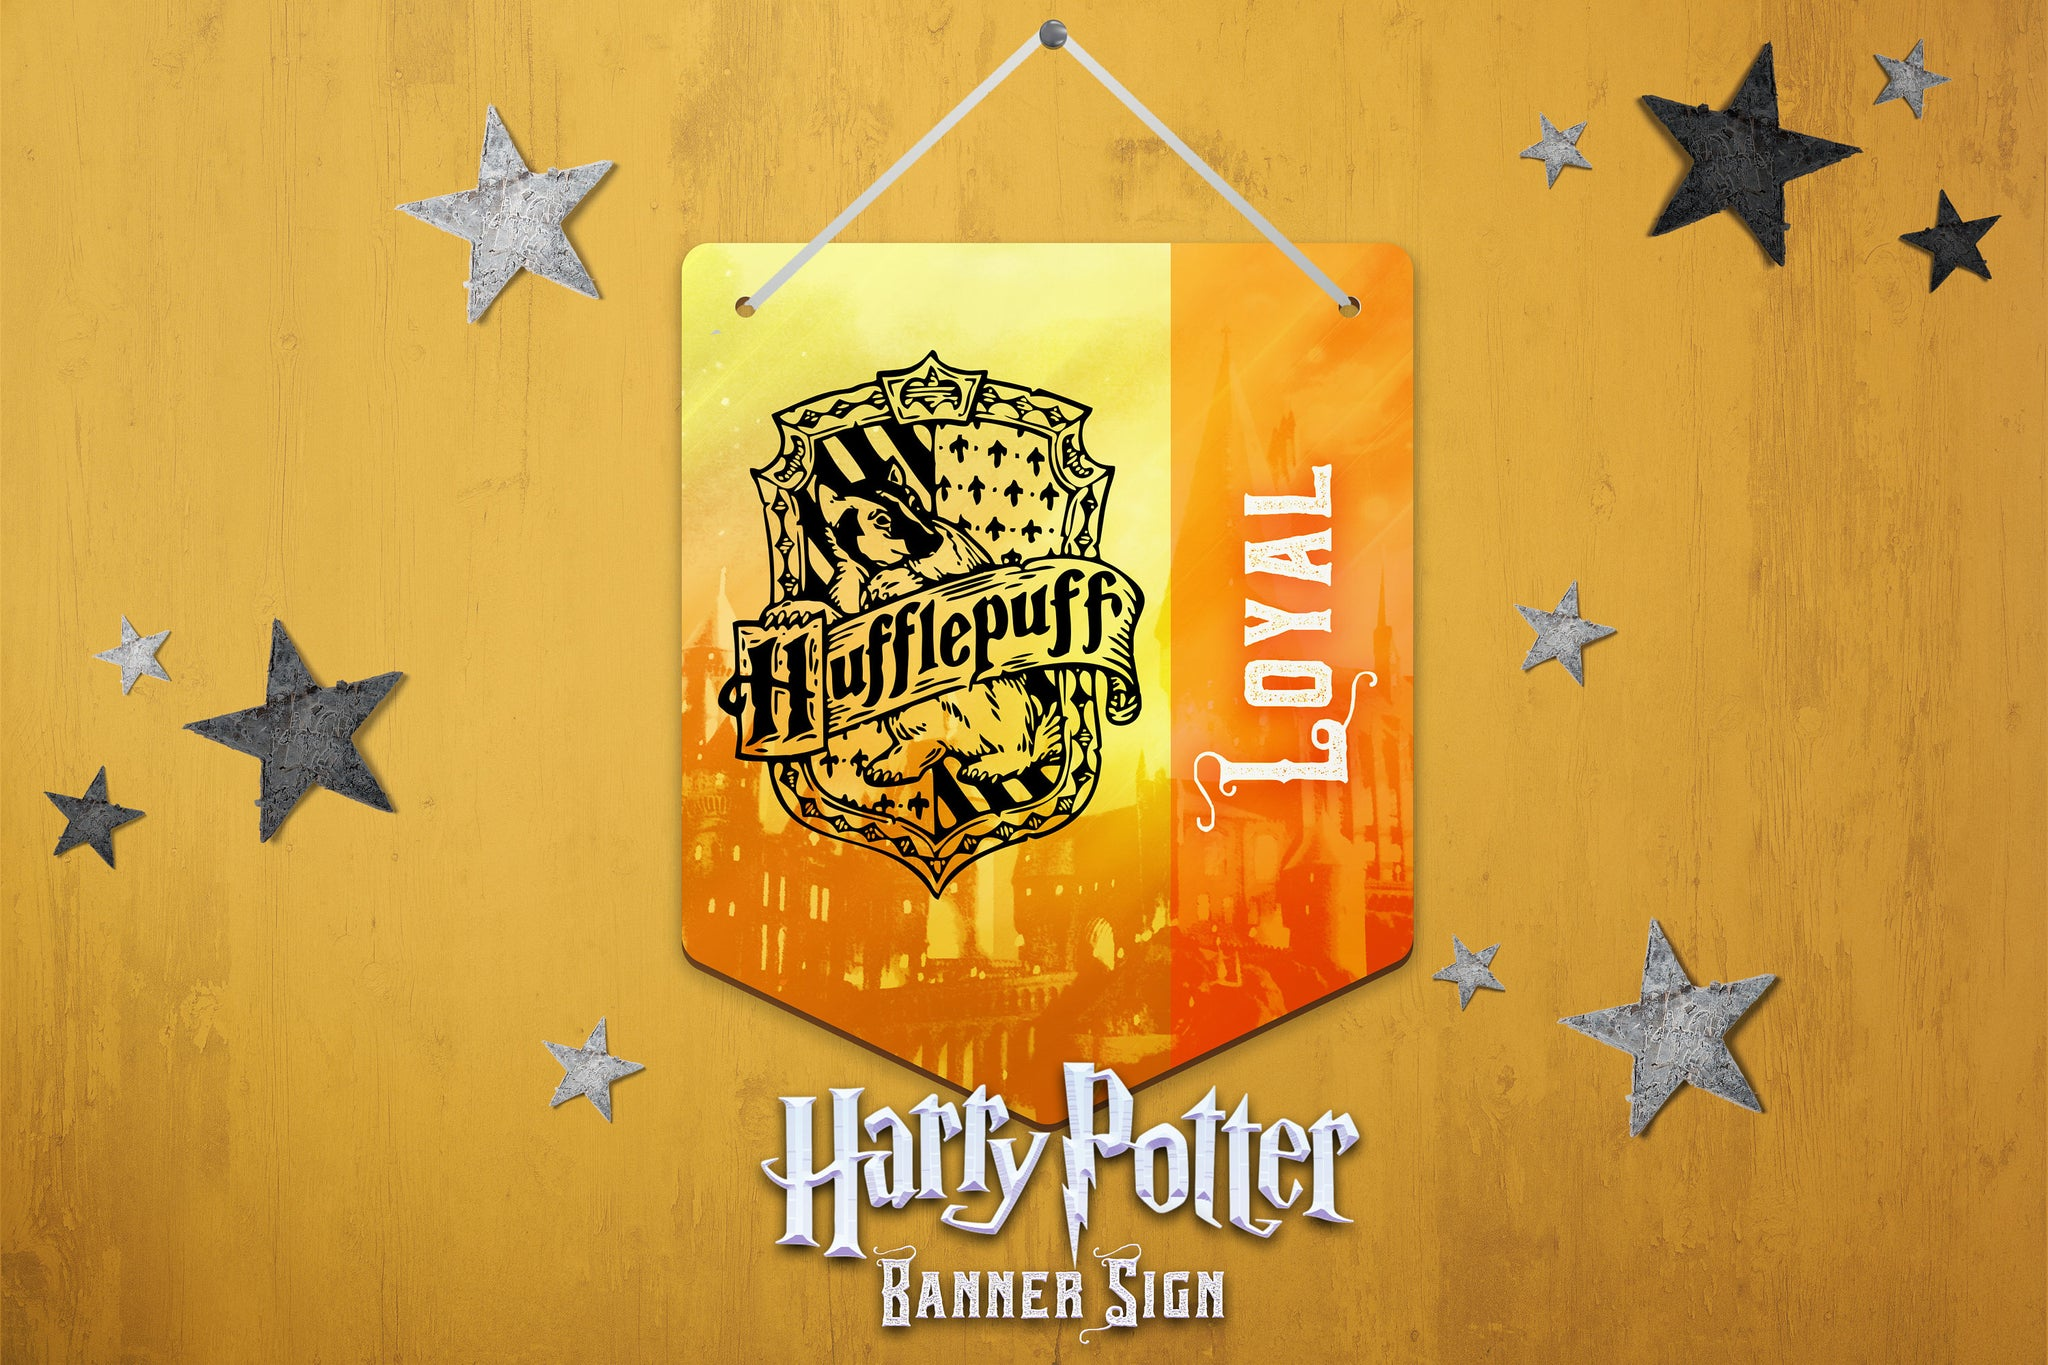 Harry Potter Wall Decor, Harry Potter Banner Sign, Hufflepuff Sign, Harry Potter Hardboard Banner Sign